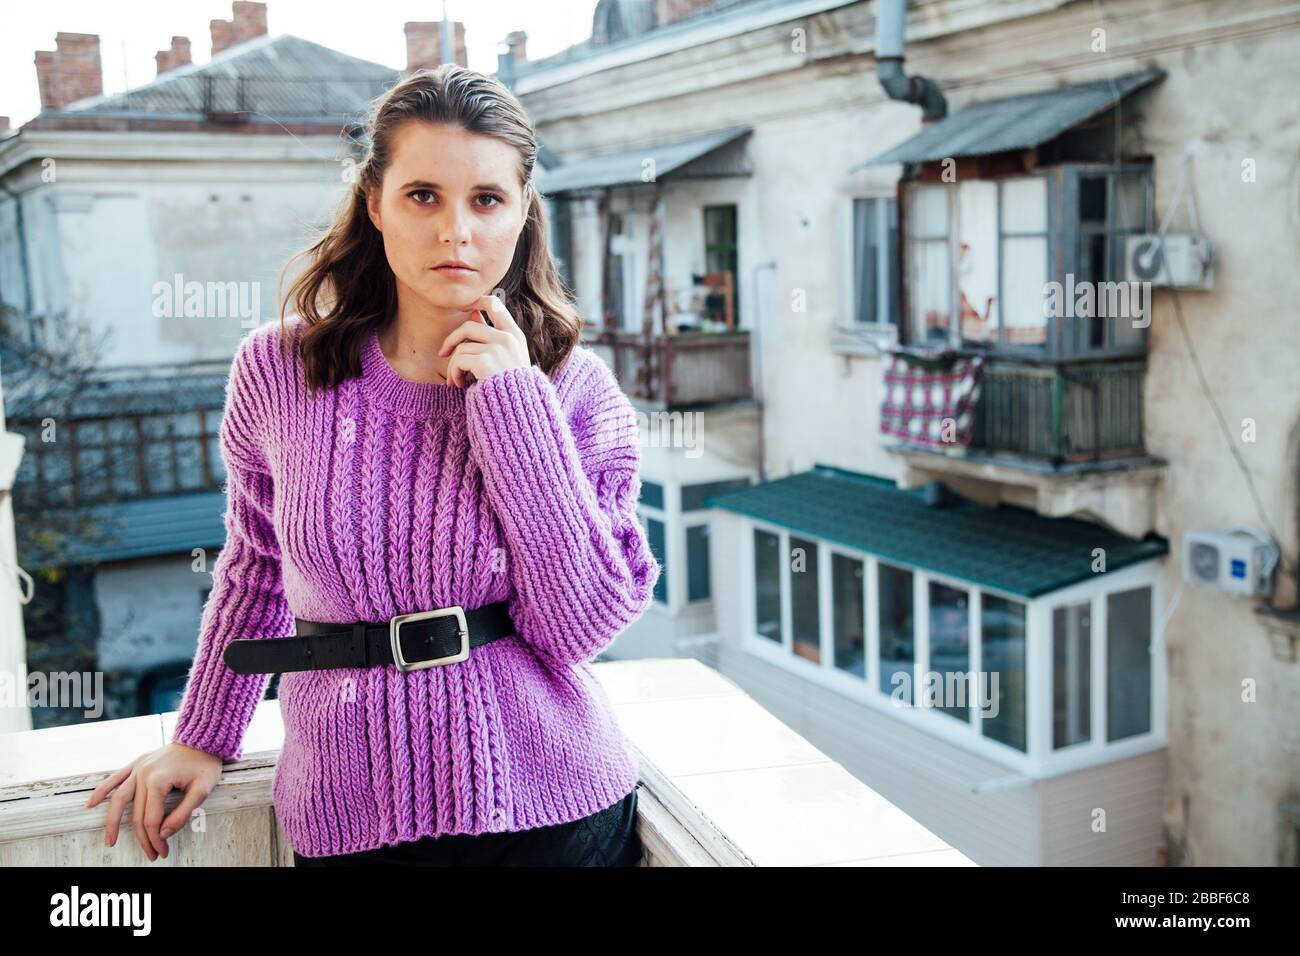 portrait of a beautiful fashionable woman in a purple sweater Stock Photo